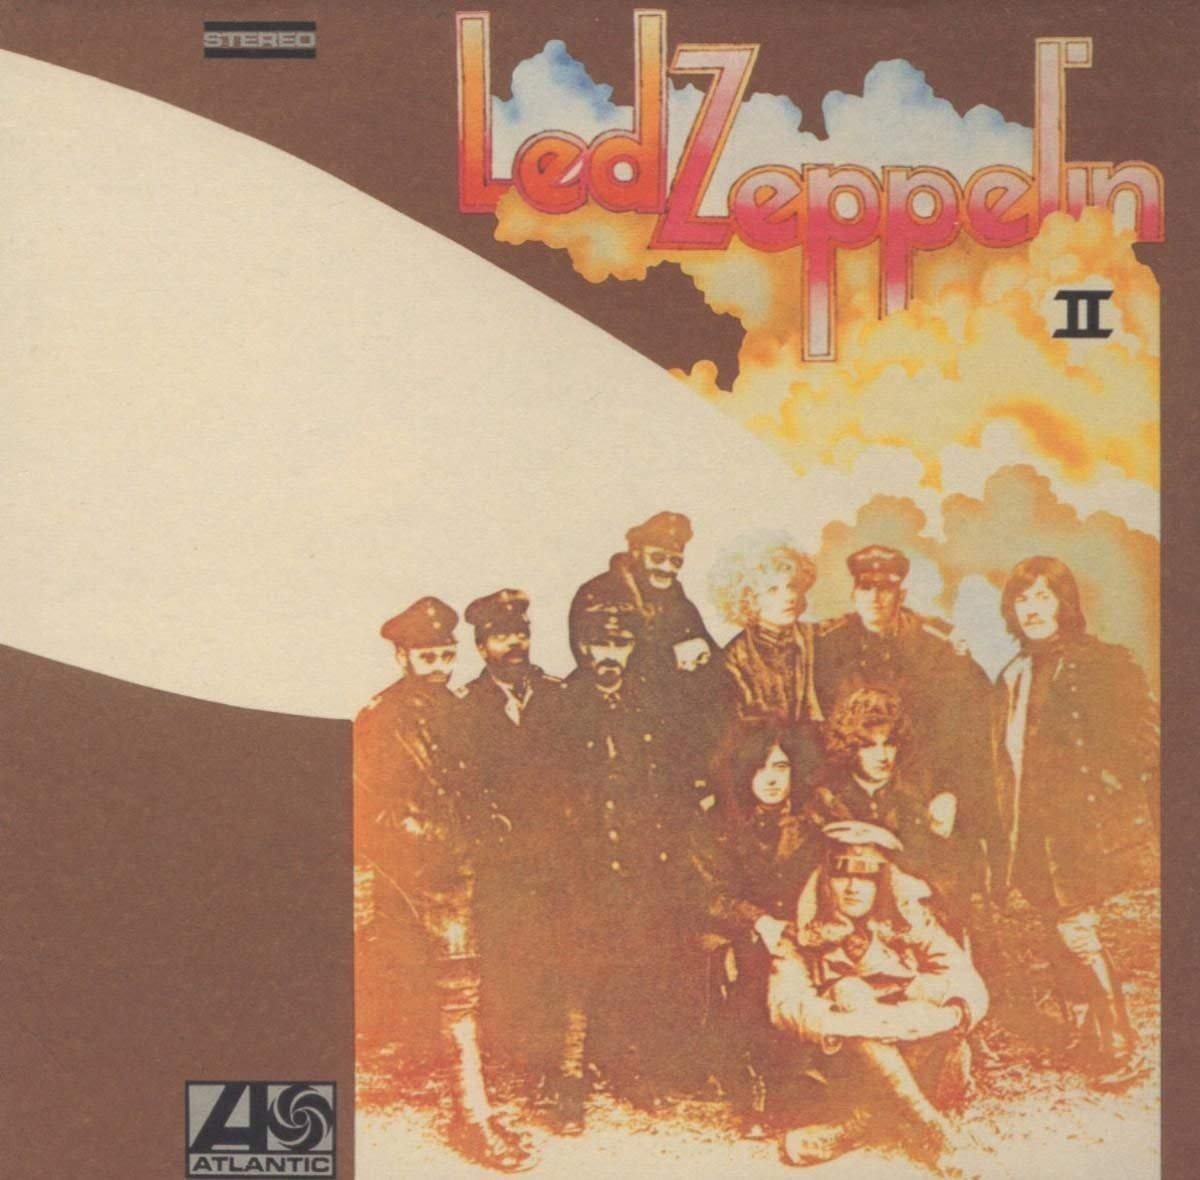 Led Zeppelin II at 50 – All Access Radio Special